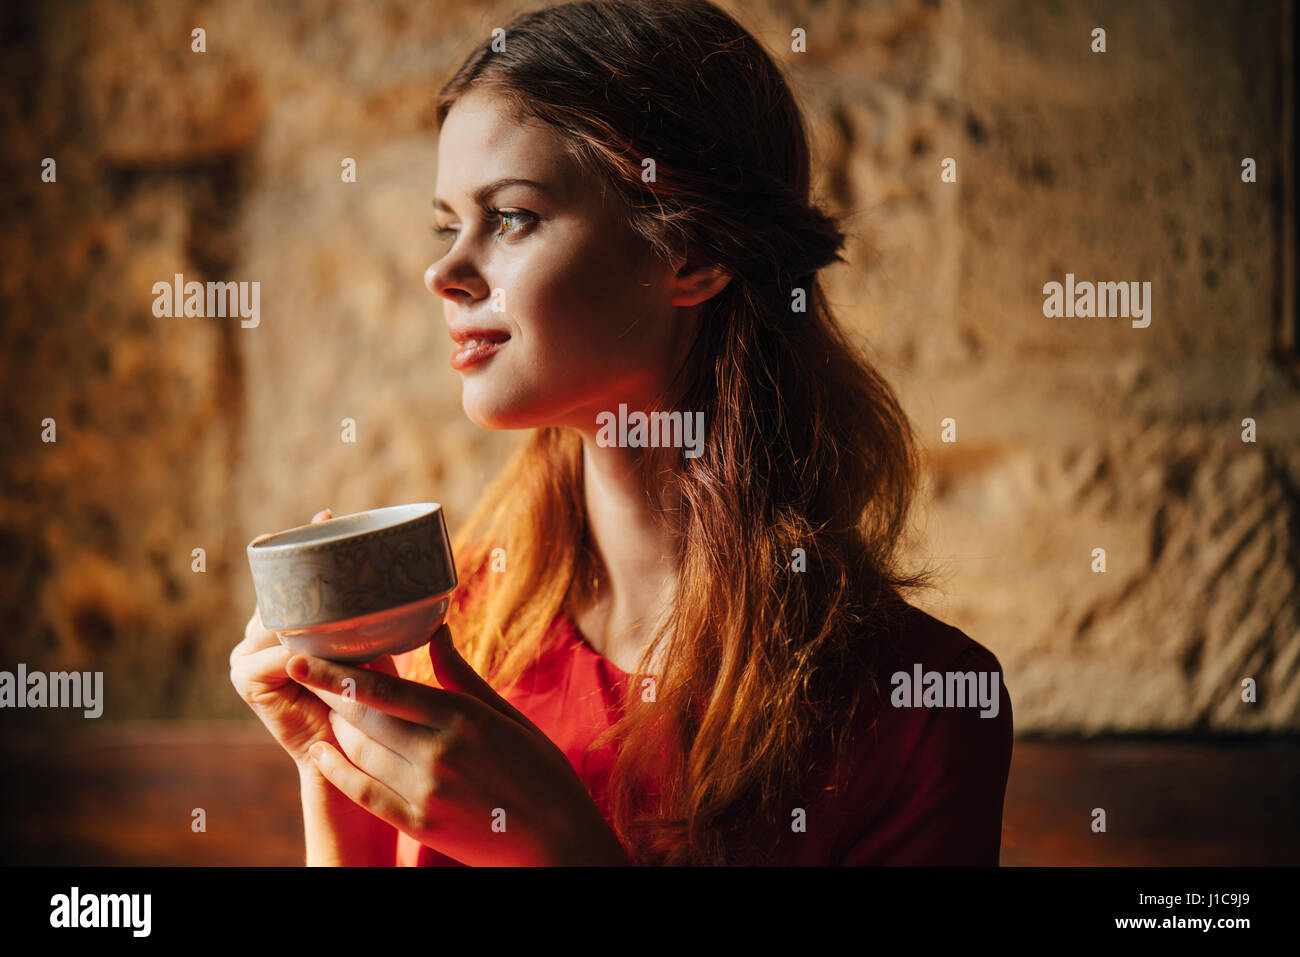 Caucasian woman holding cup of tea - Stock Image